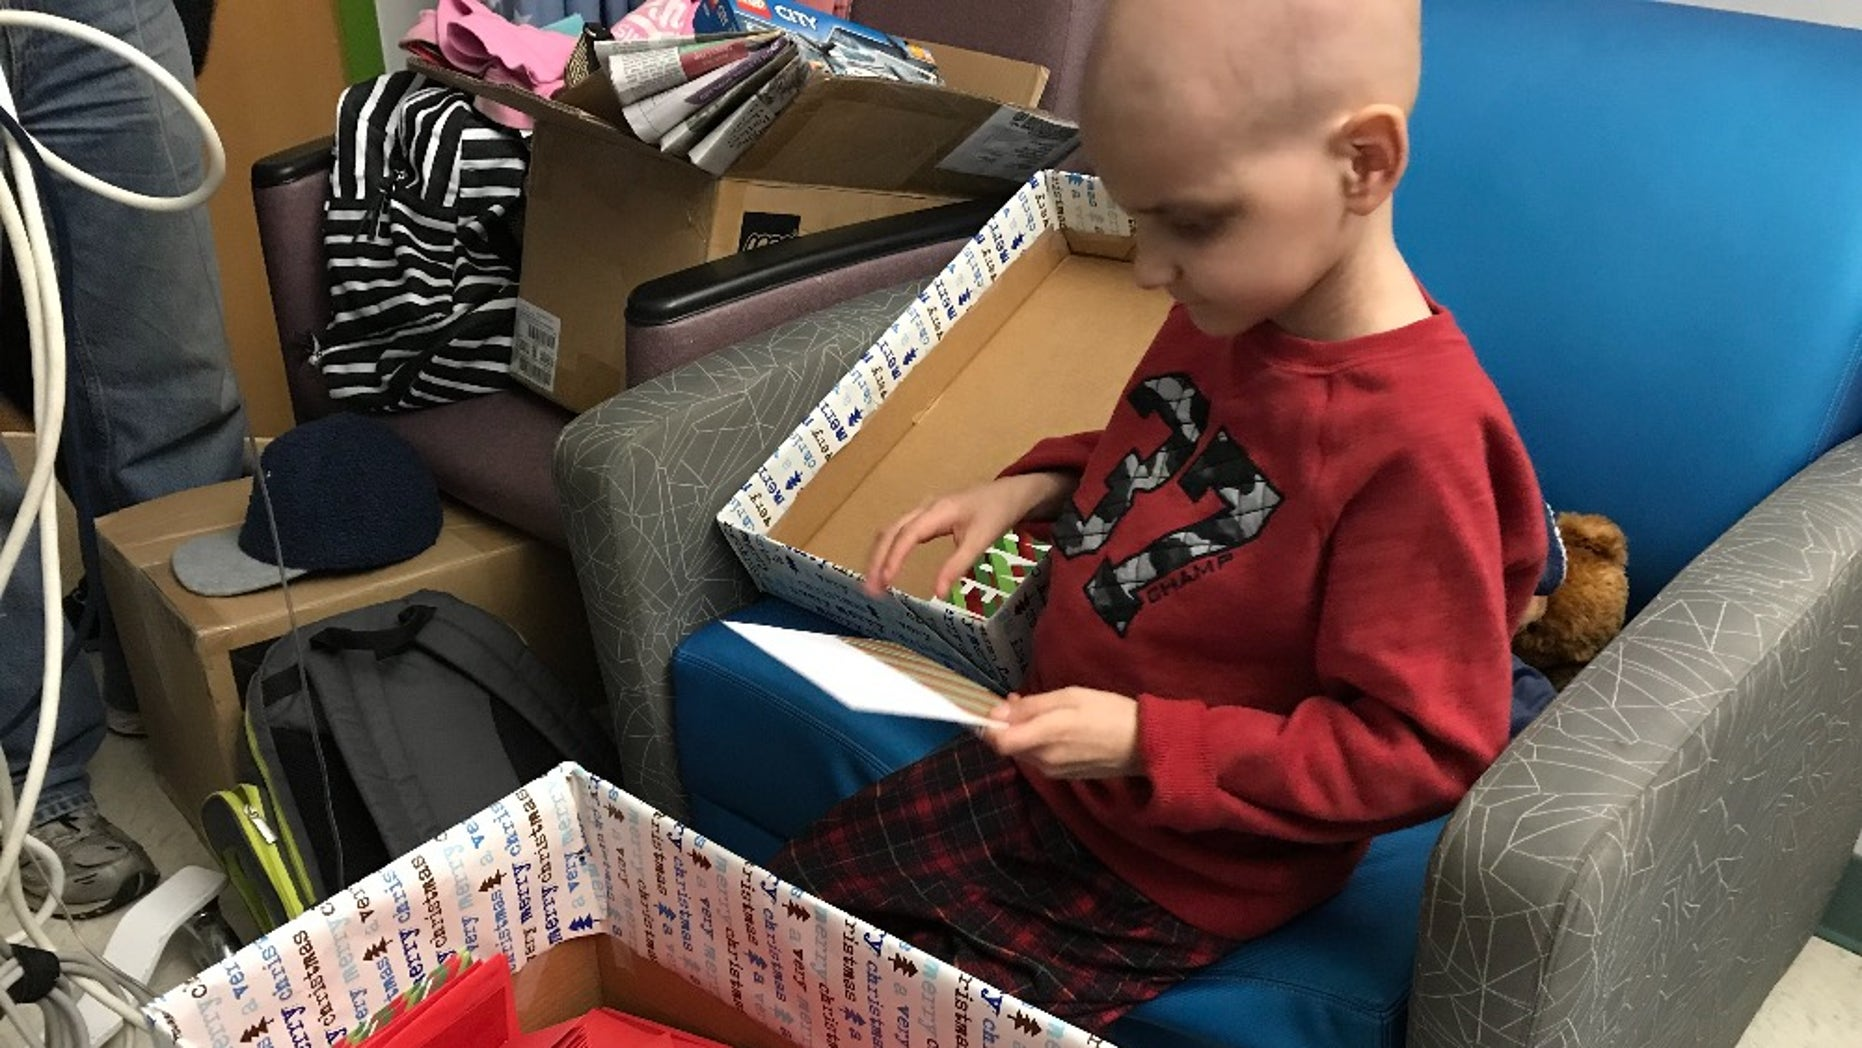 14,000 strangers responded to Jacob Thompson's wish for Christmas cards to celebrate his favorite holiday.